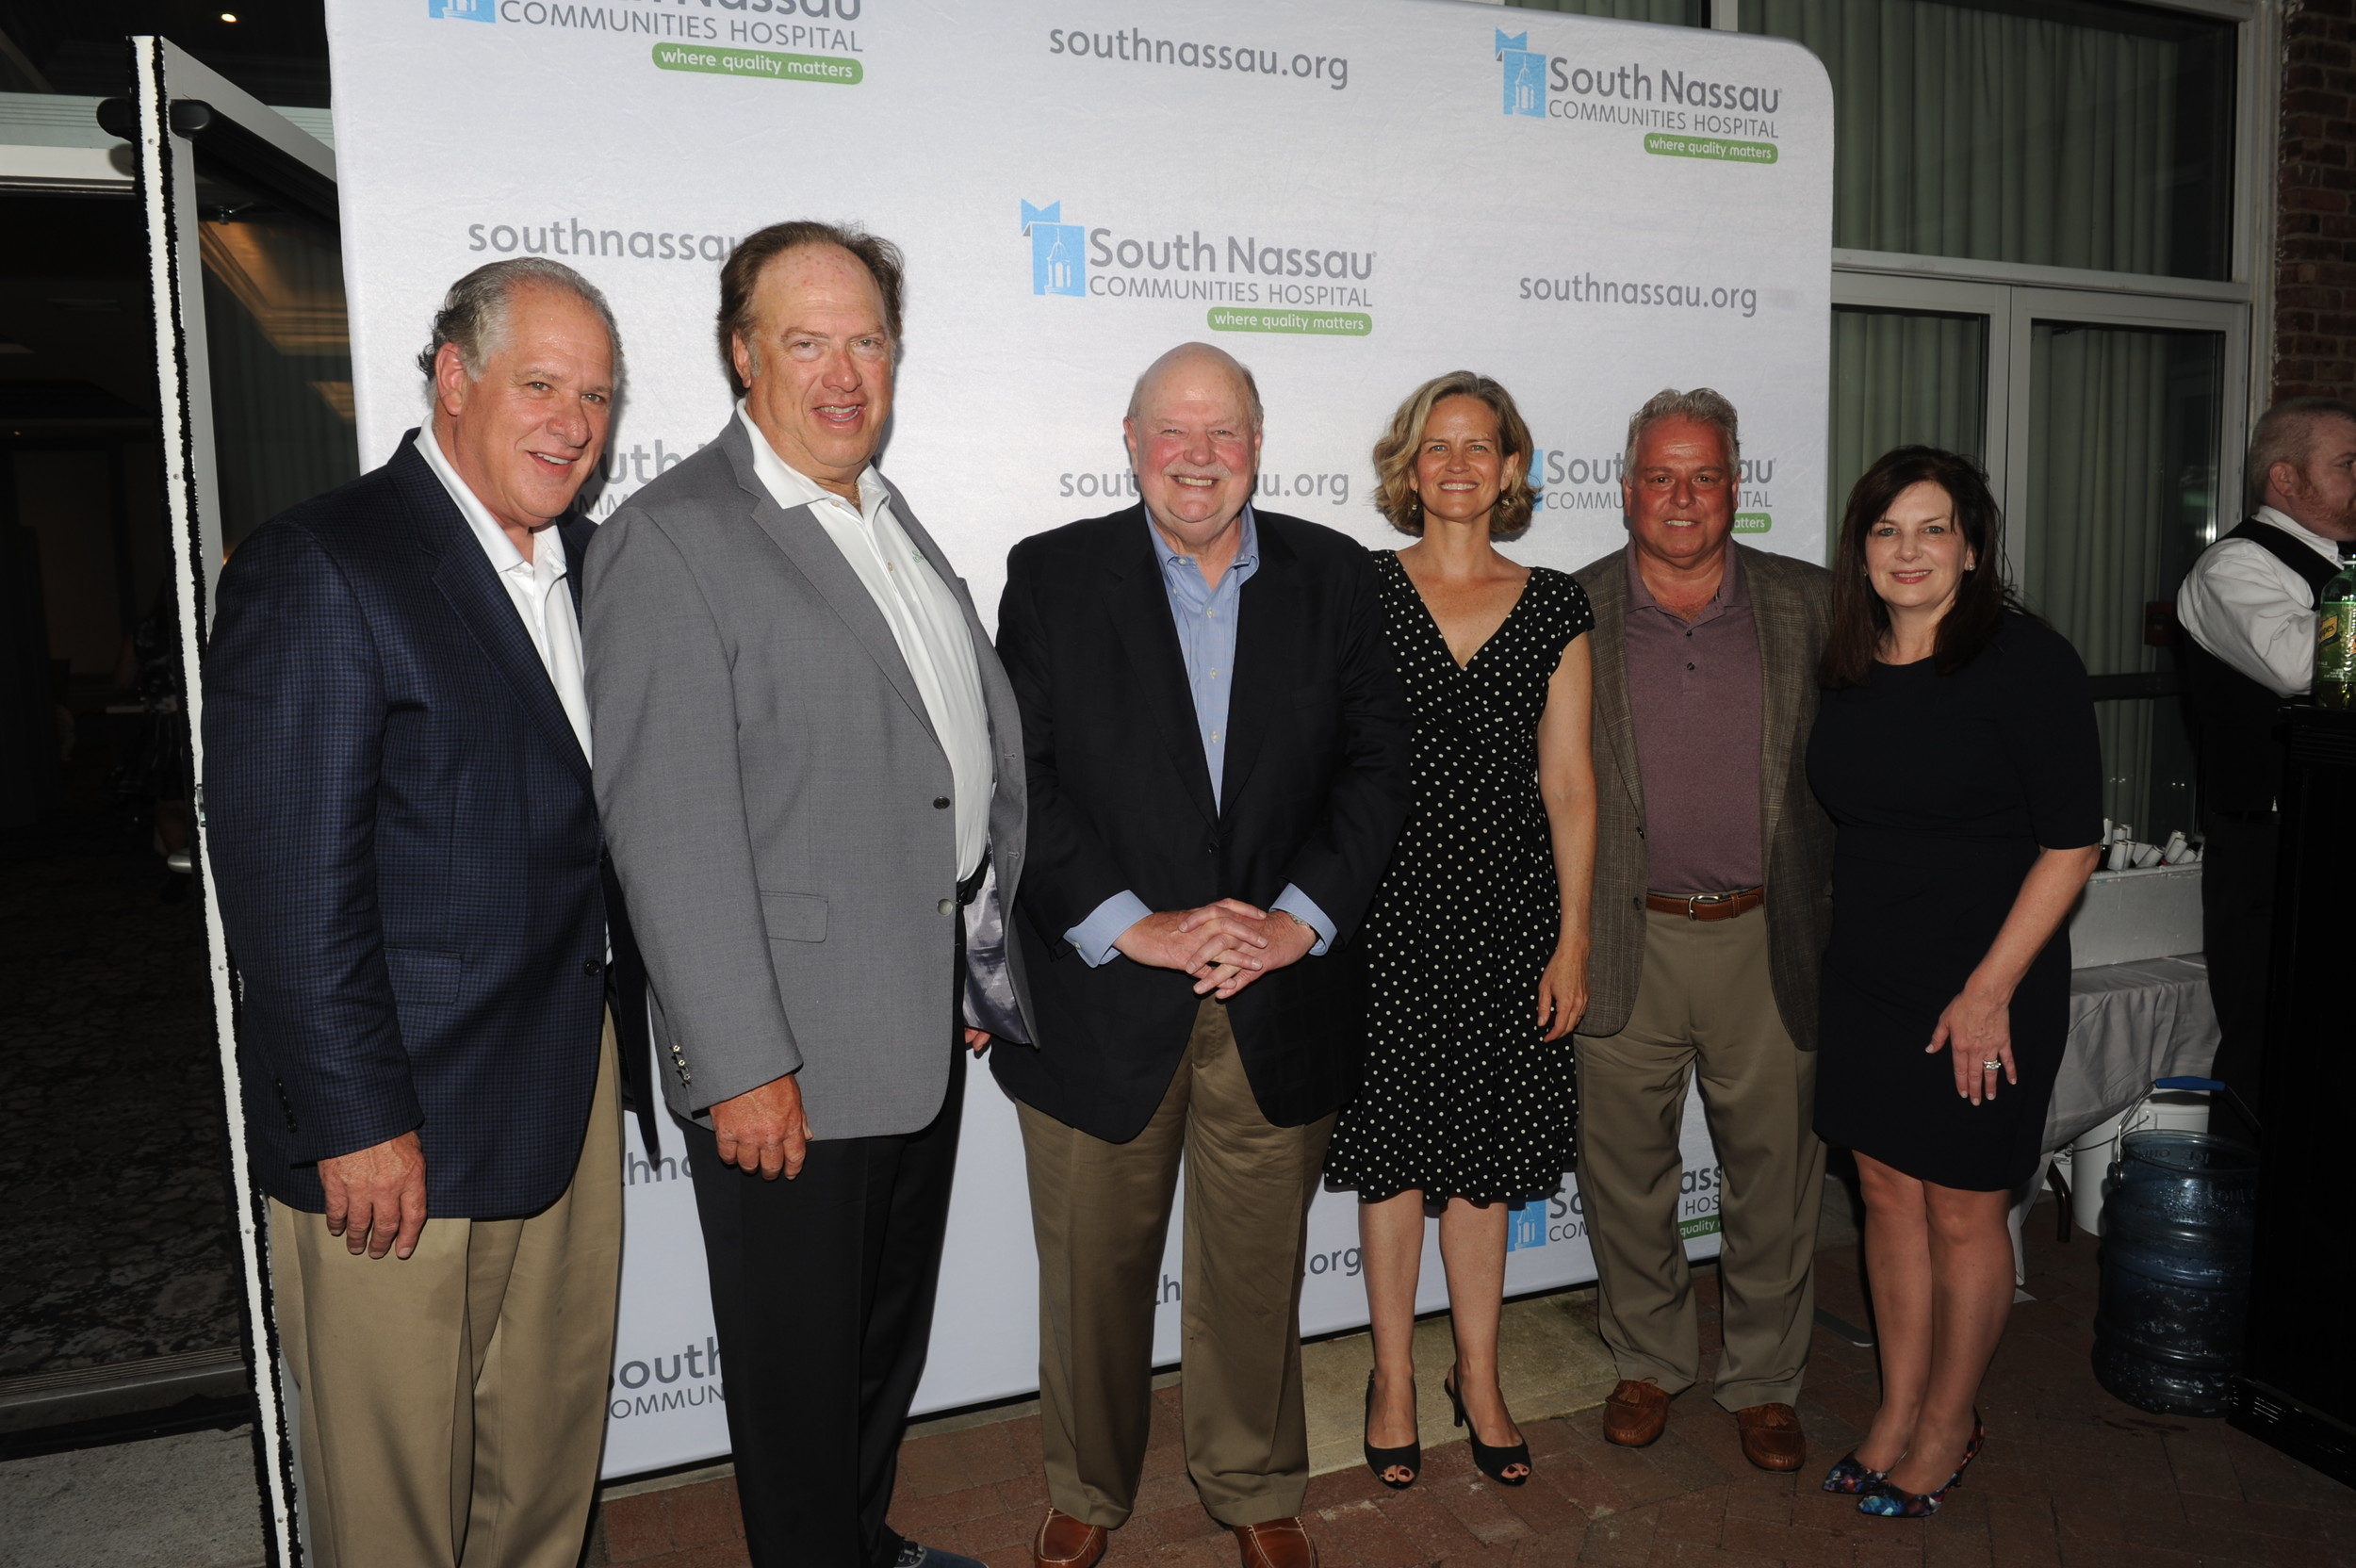 Golf Committee co-chairmen Tony Cancellieri and Jeff Greenfield, left, Chairman of the Board Joseph Fennessy, Legislator Laura Curran and Michael and Eileen Sapraicone.